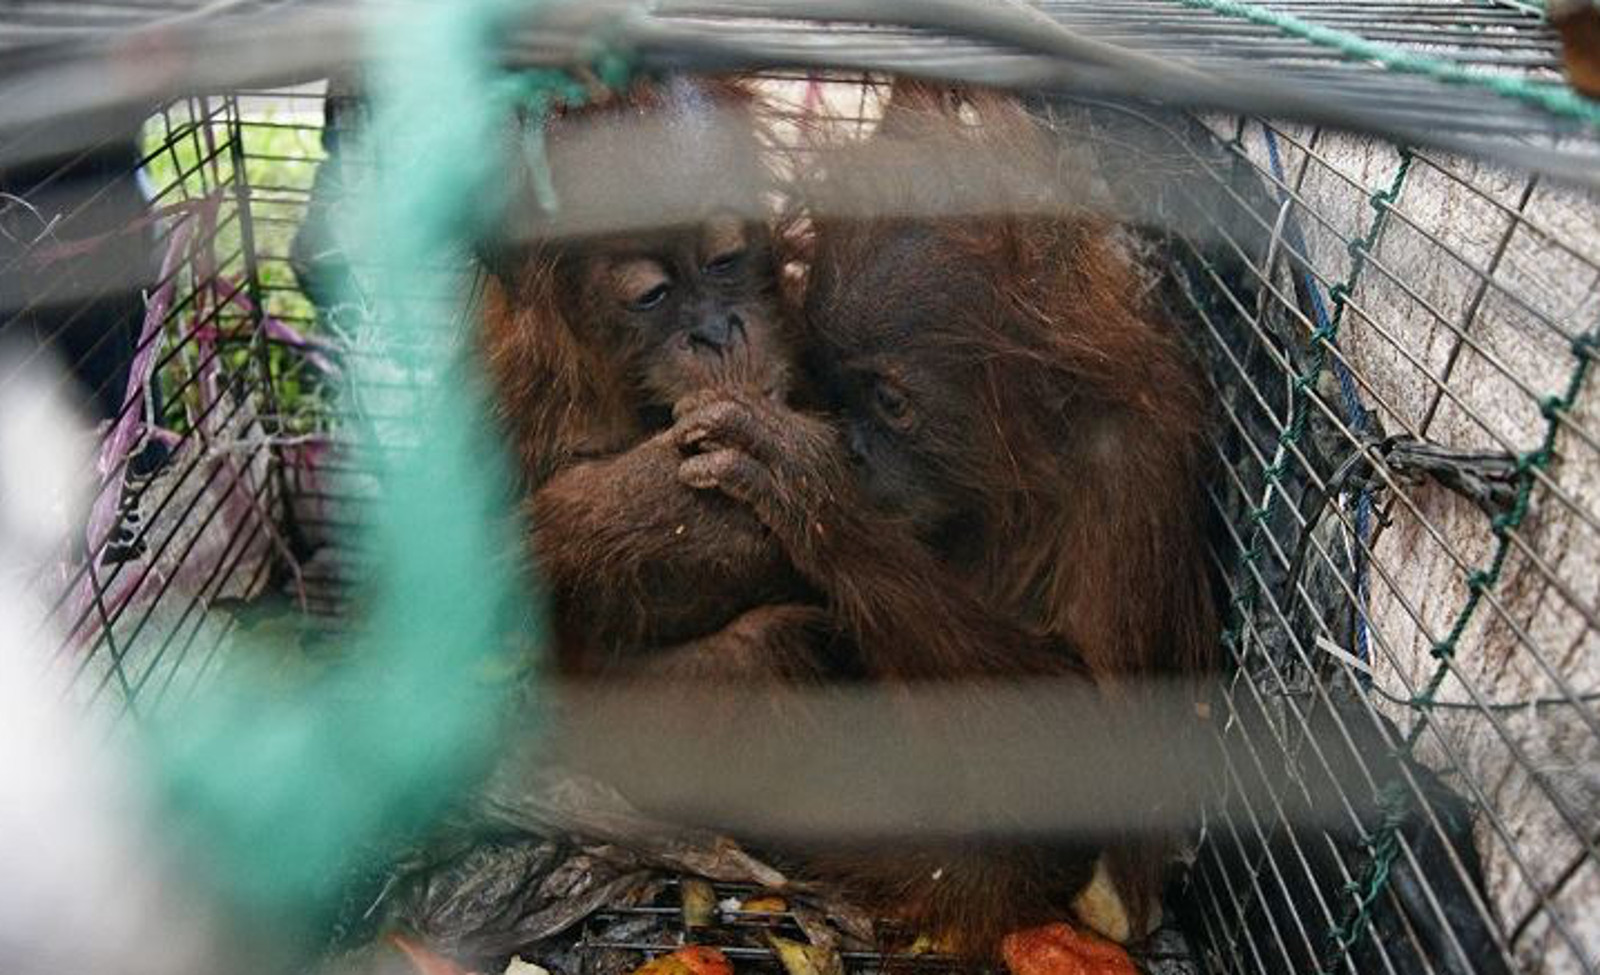 Why This Photo of Baby Orangutans in a Cage Will Break Your Heart but Give You Hope